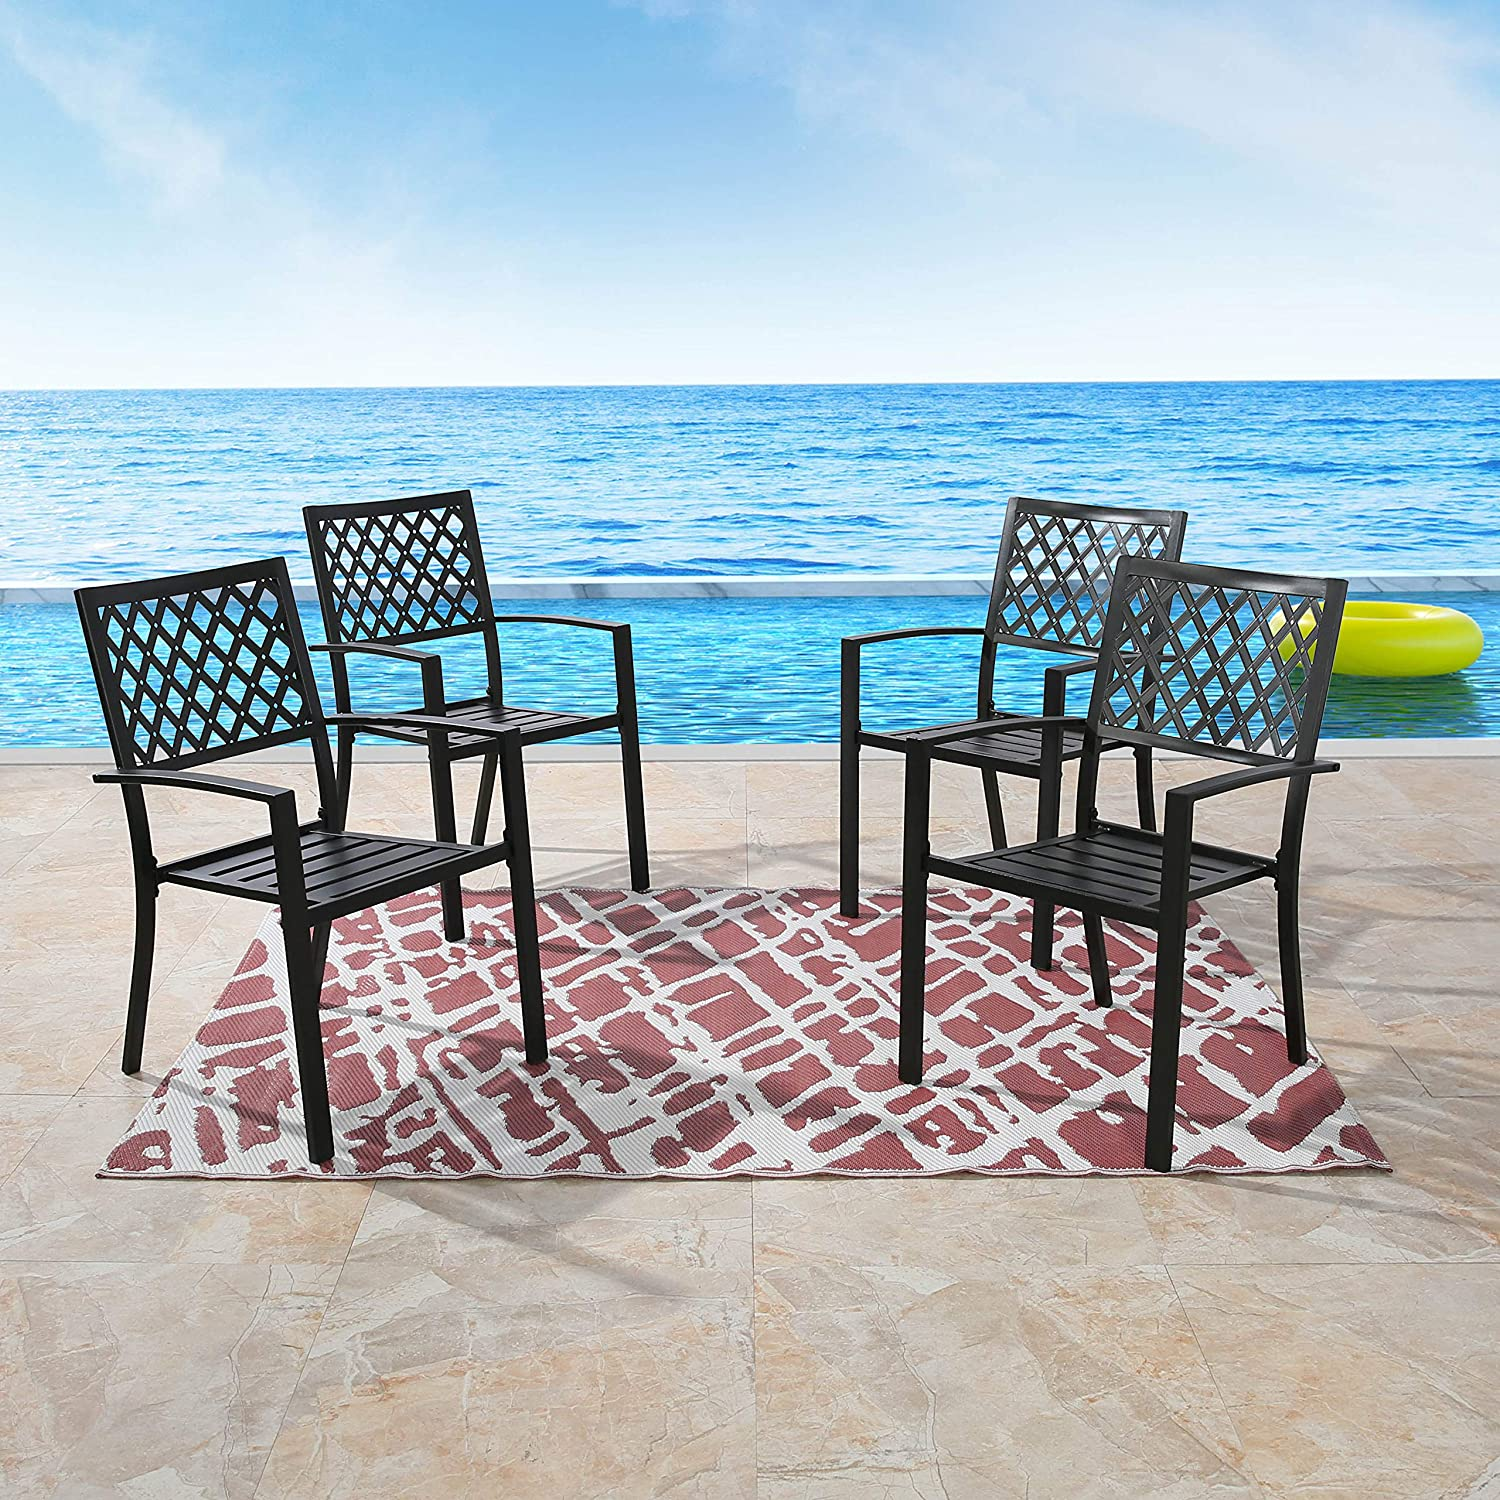 Japan Maker New Patio Tree Stacking 5 ☆ popular Outdoor Dining Chairs Slat Ch Steel Arm Seat